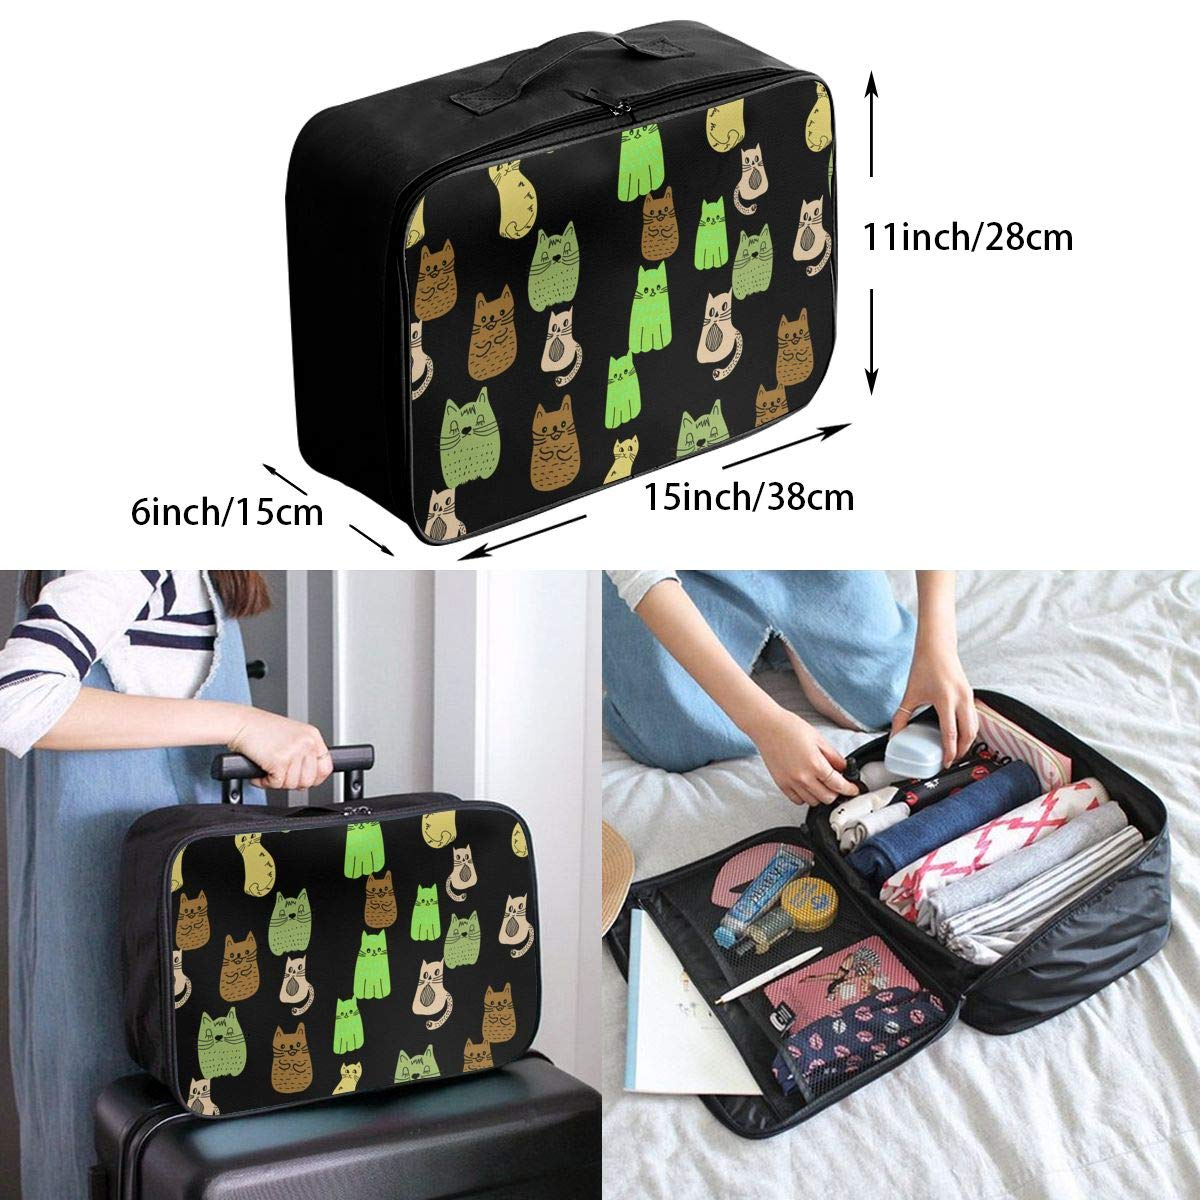 ADGAI Green Cats of Different Shades Canvas Travel Weekender Bag,Fashion Custom Lightweight Large Capacity Portable Luggage Bag,Suitcase Trolley Bag